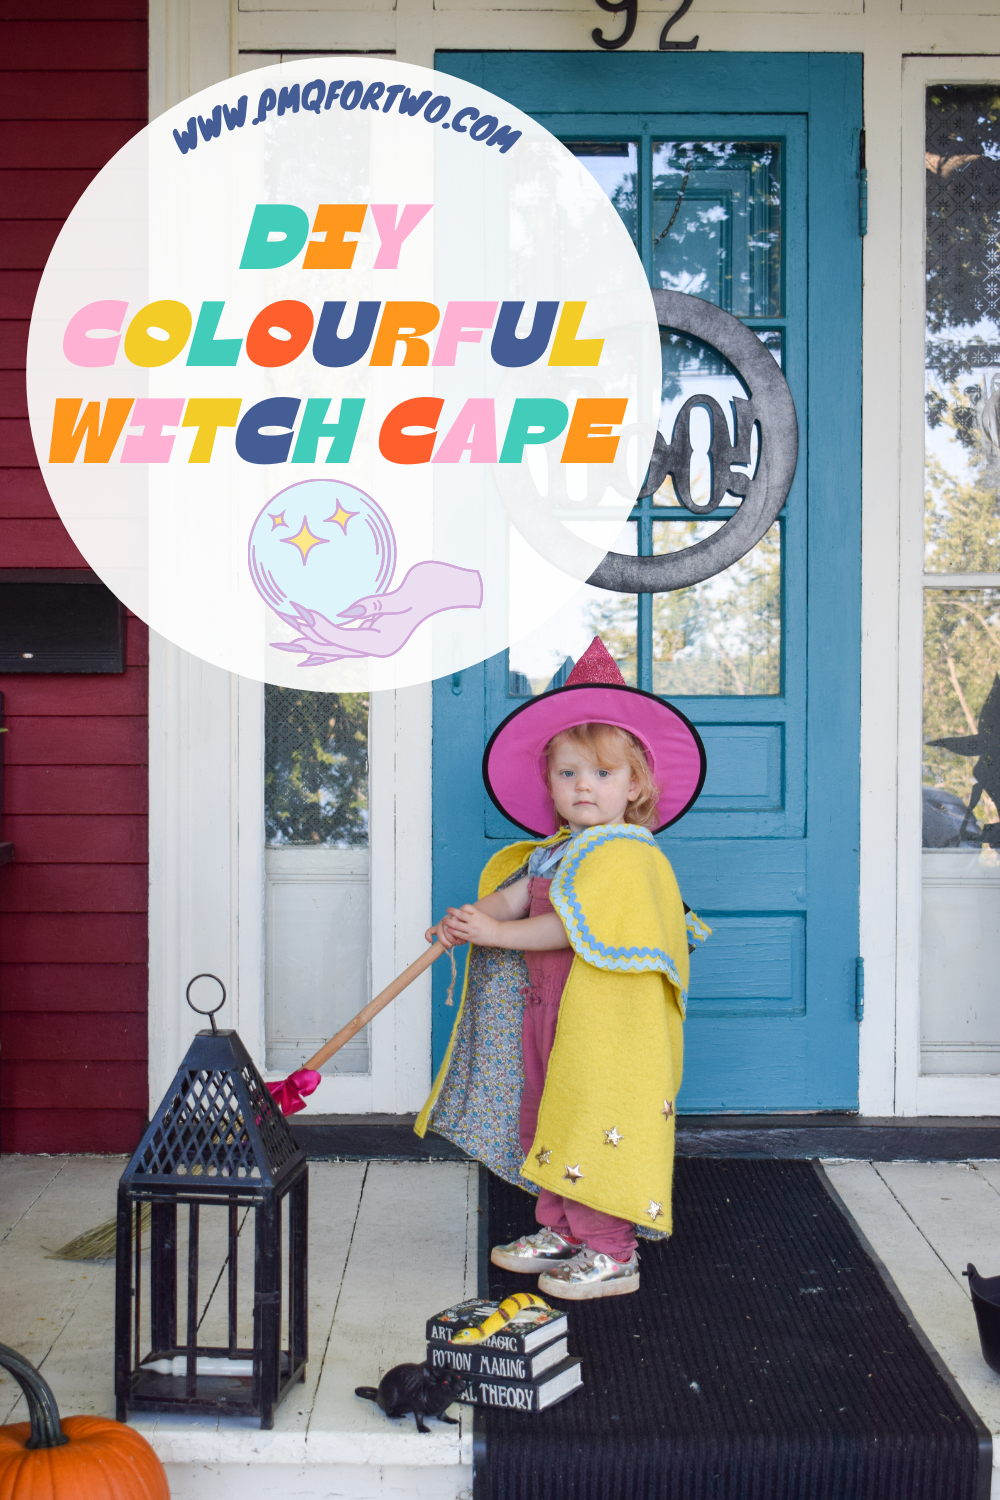 Capes don't have to be black, they can be colourful witch capes for little kids! Make something that will grow with them, and be used year-round.